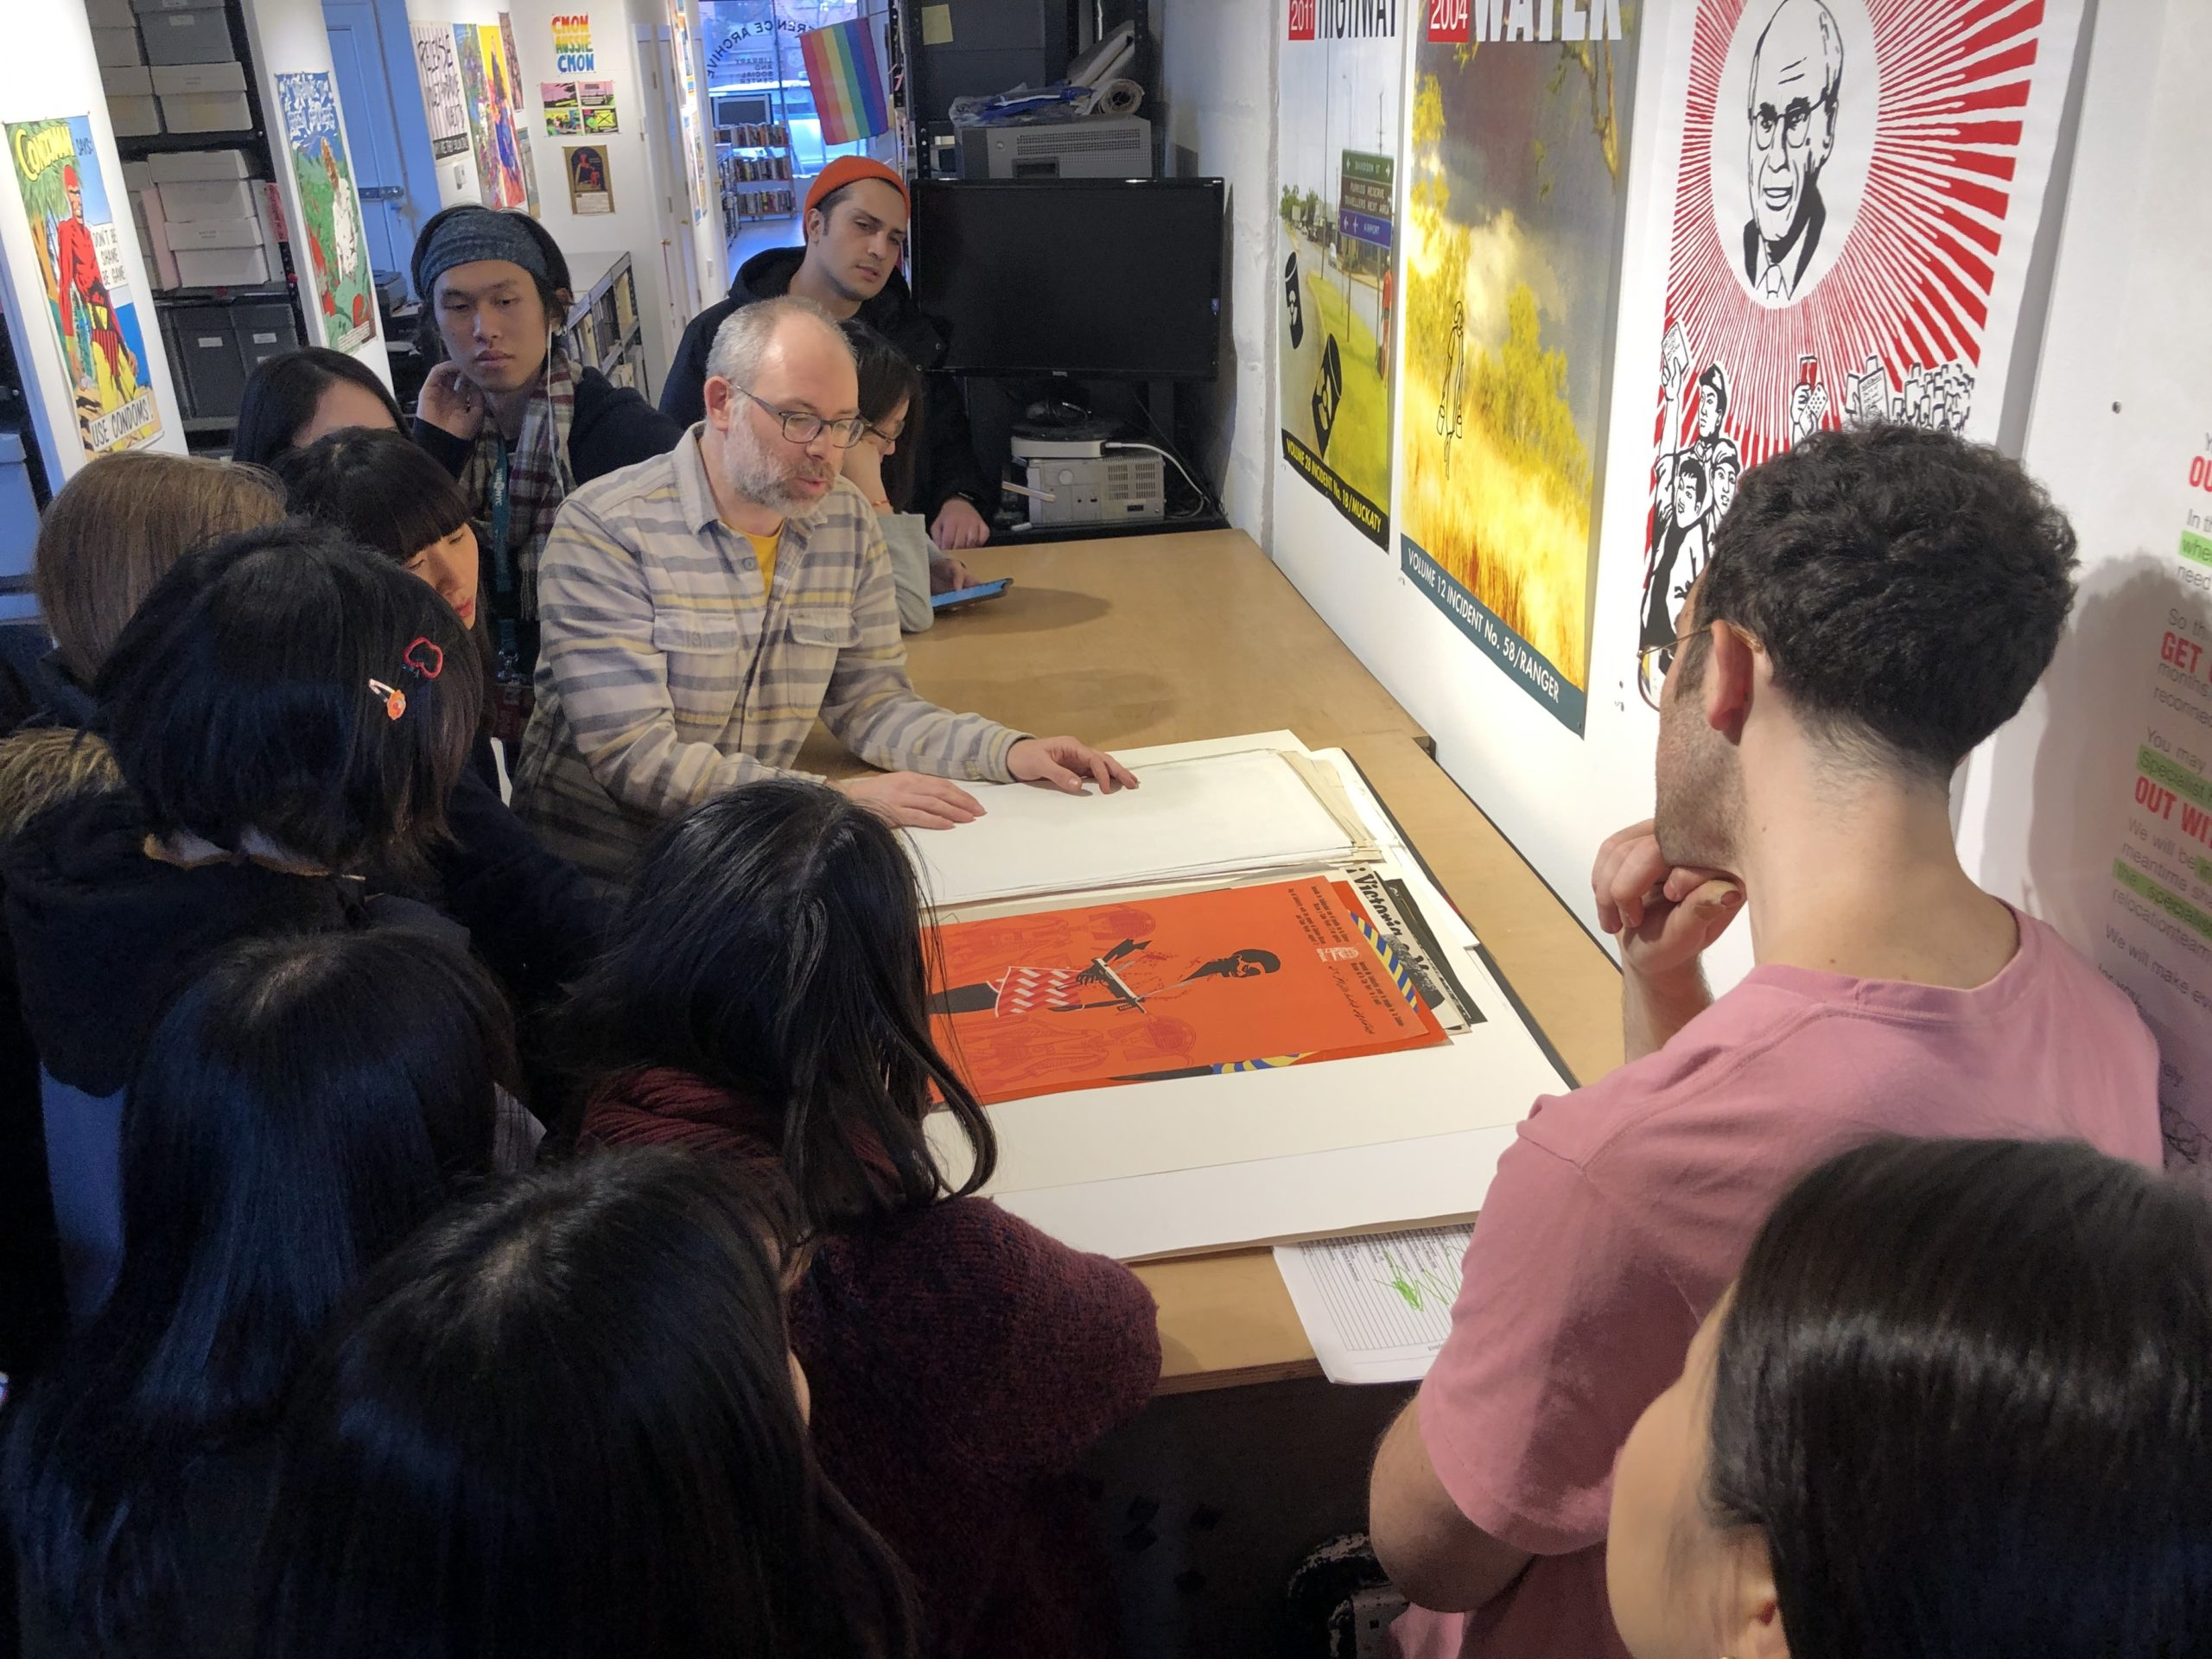 Josh MacPhhee showing posters to students